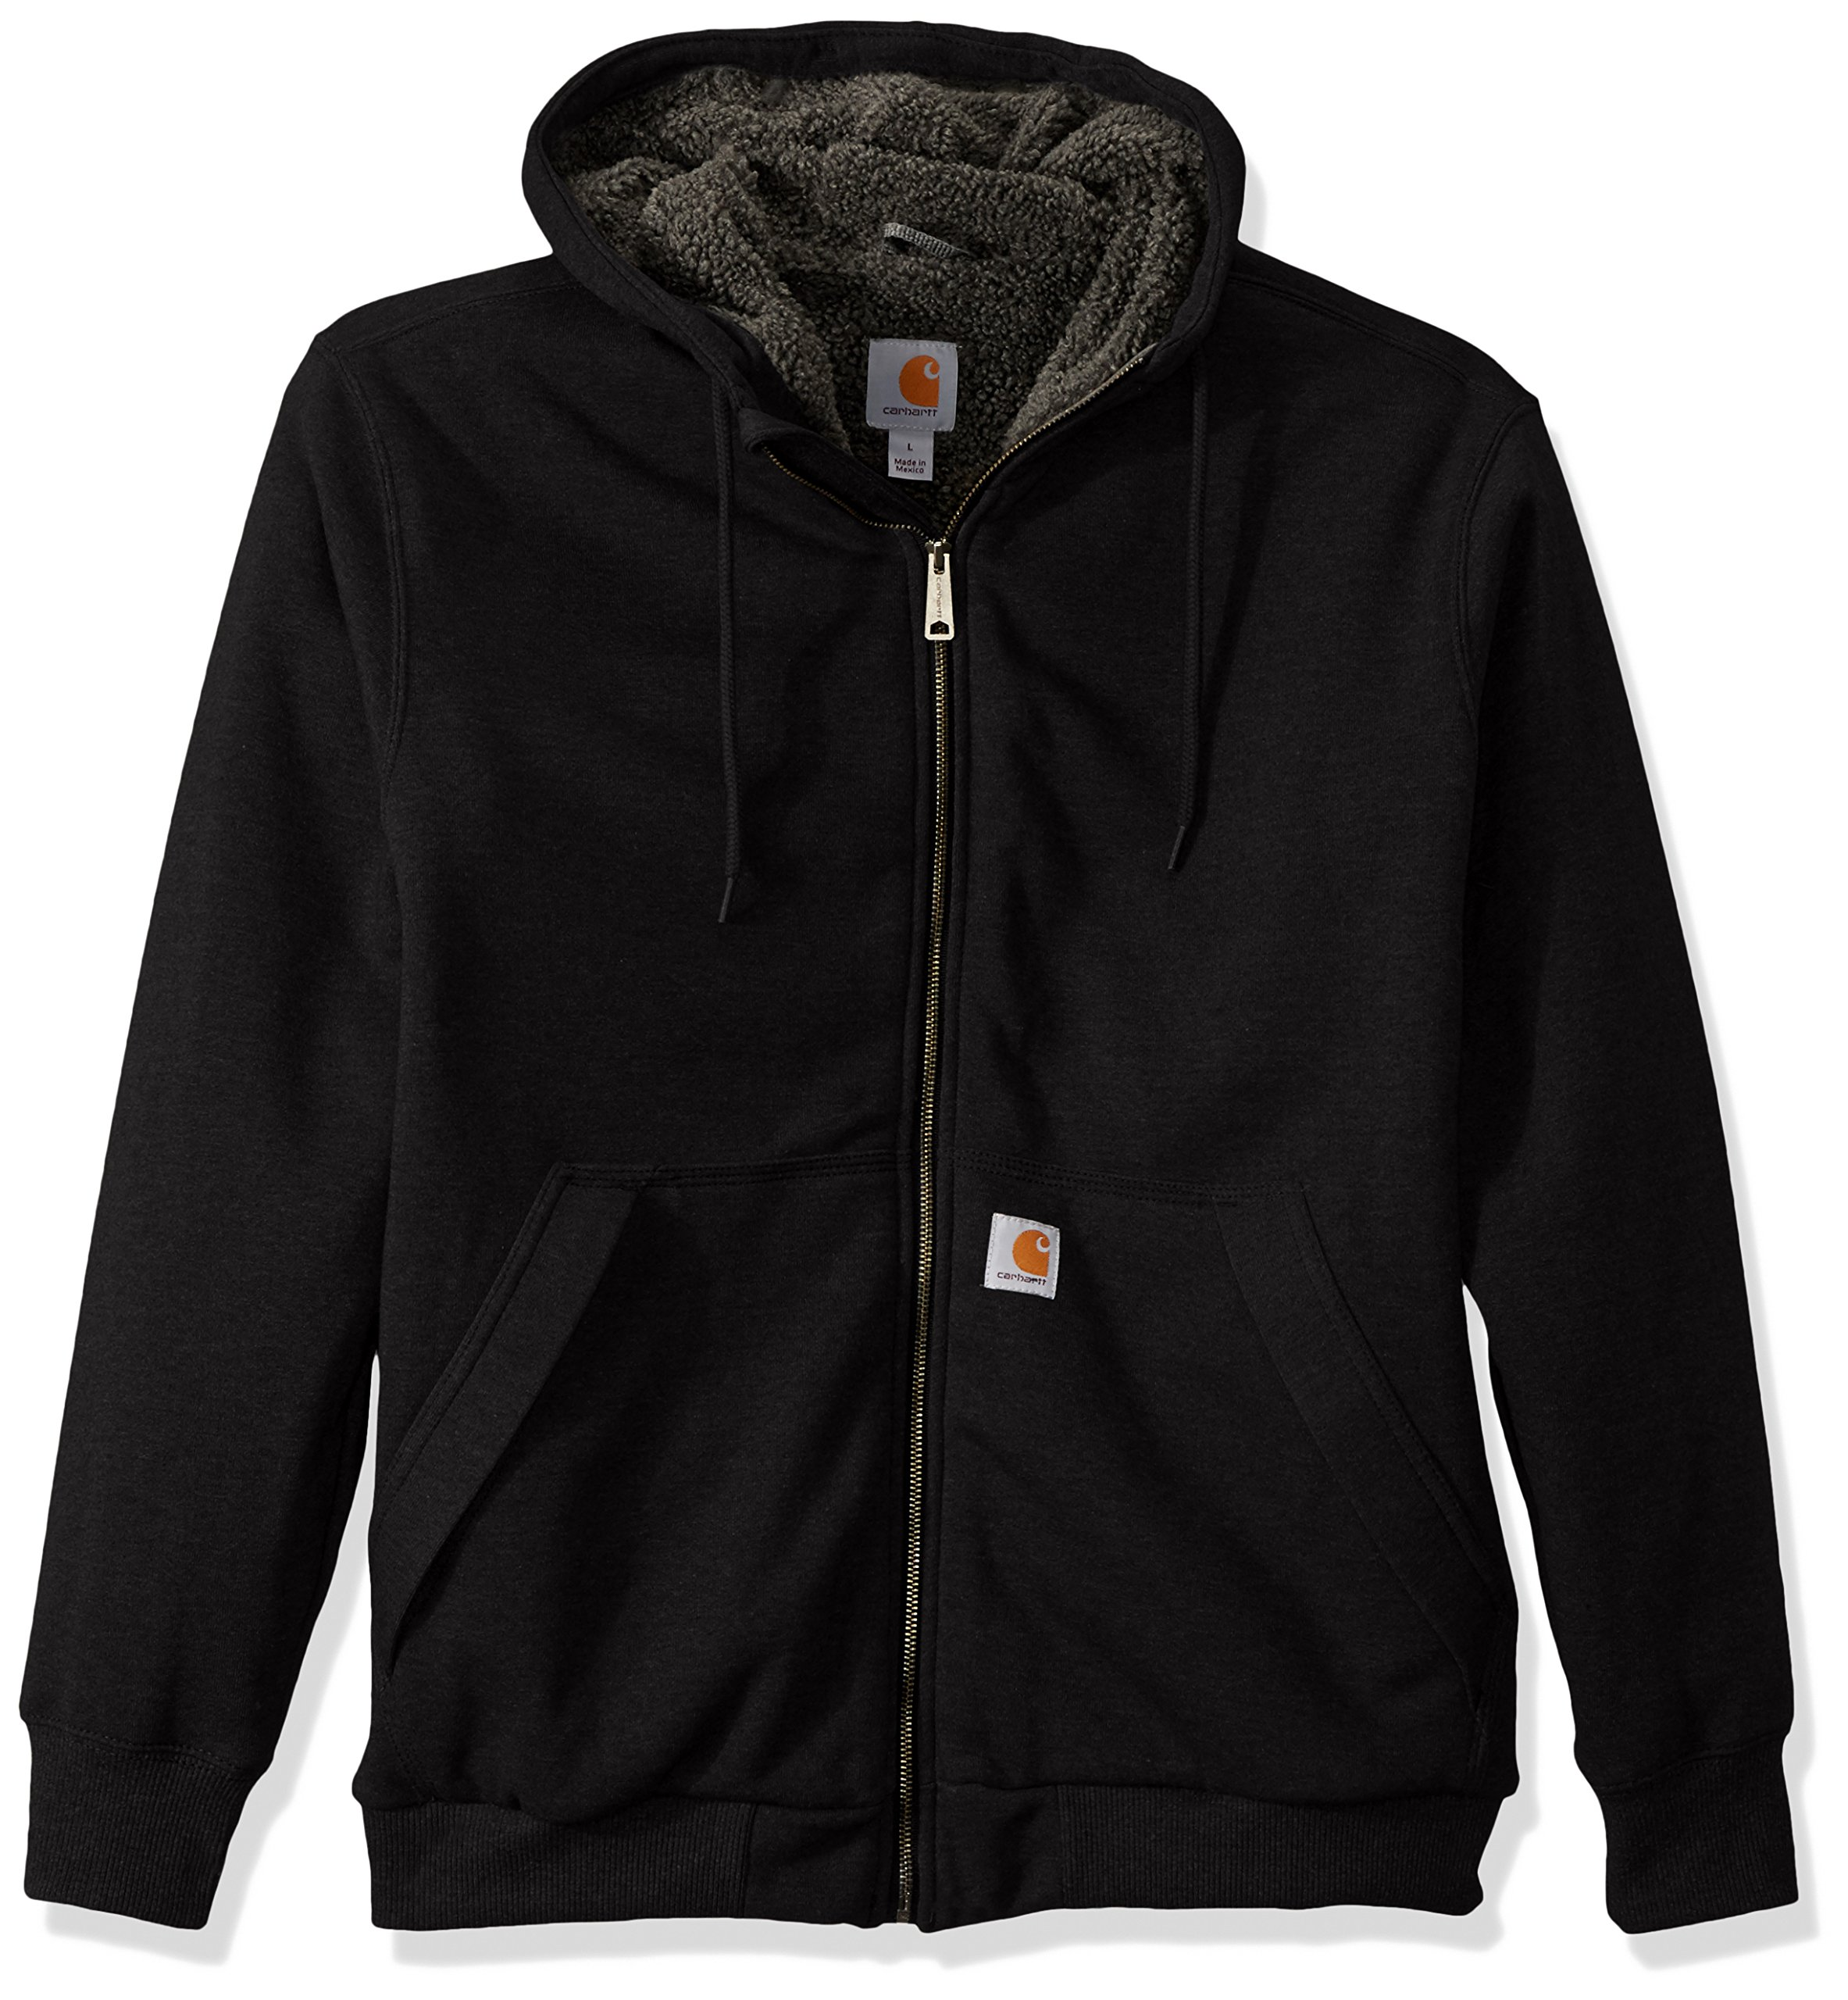 Carhartt Men's Rain Defender Rockland Sherpa Lined Hooded Sweatshirt, Black, Large